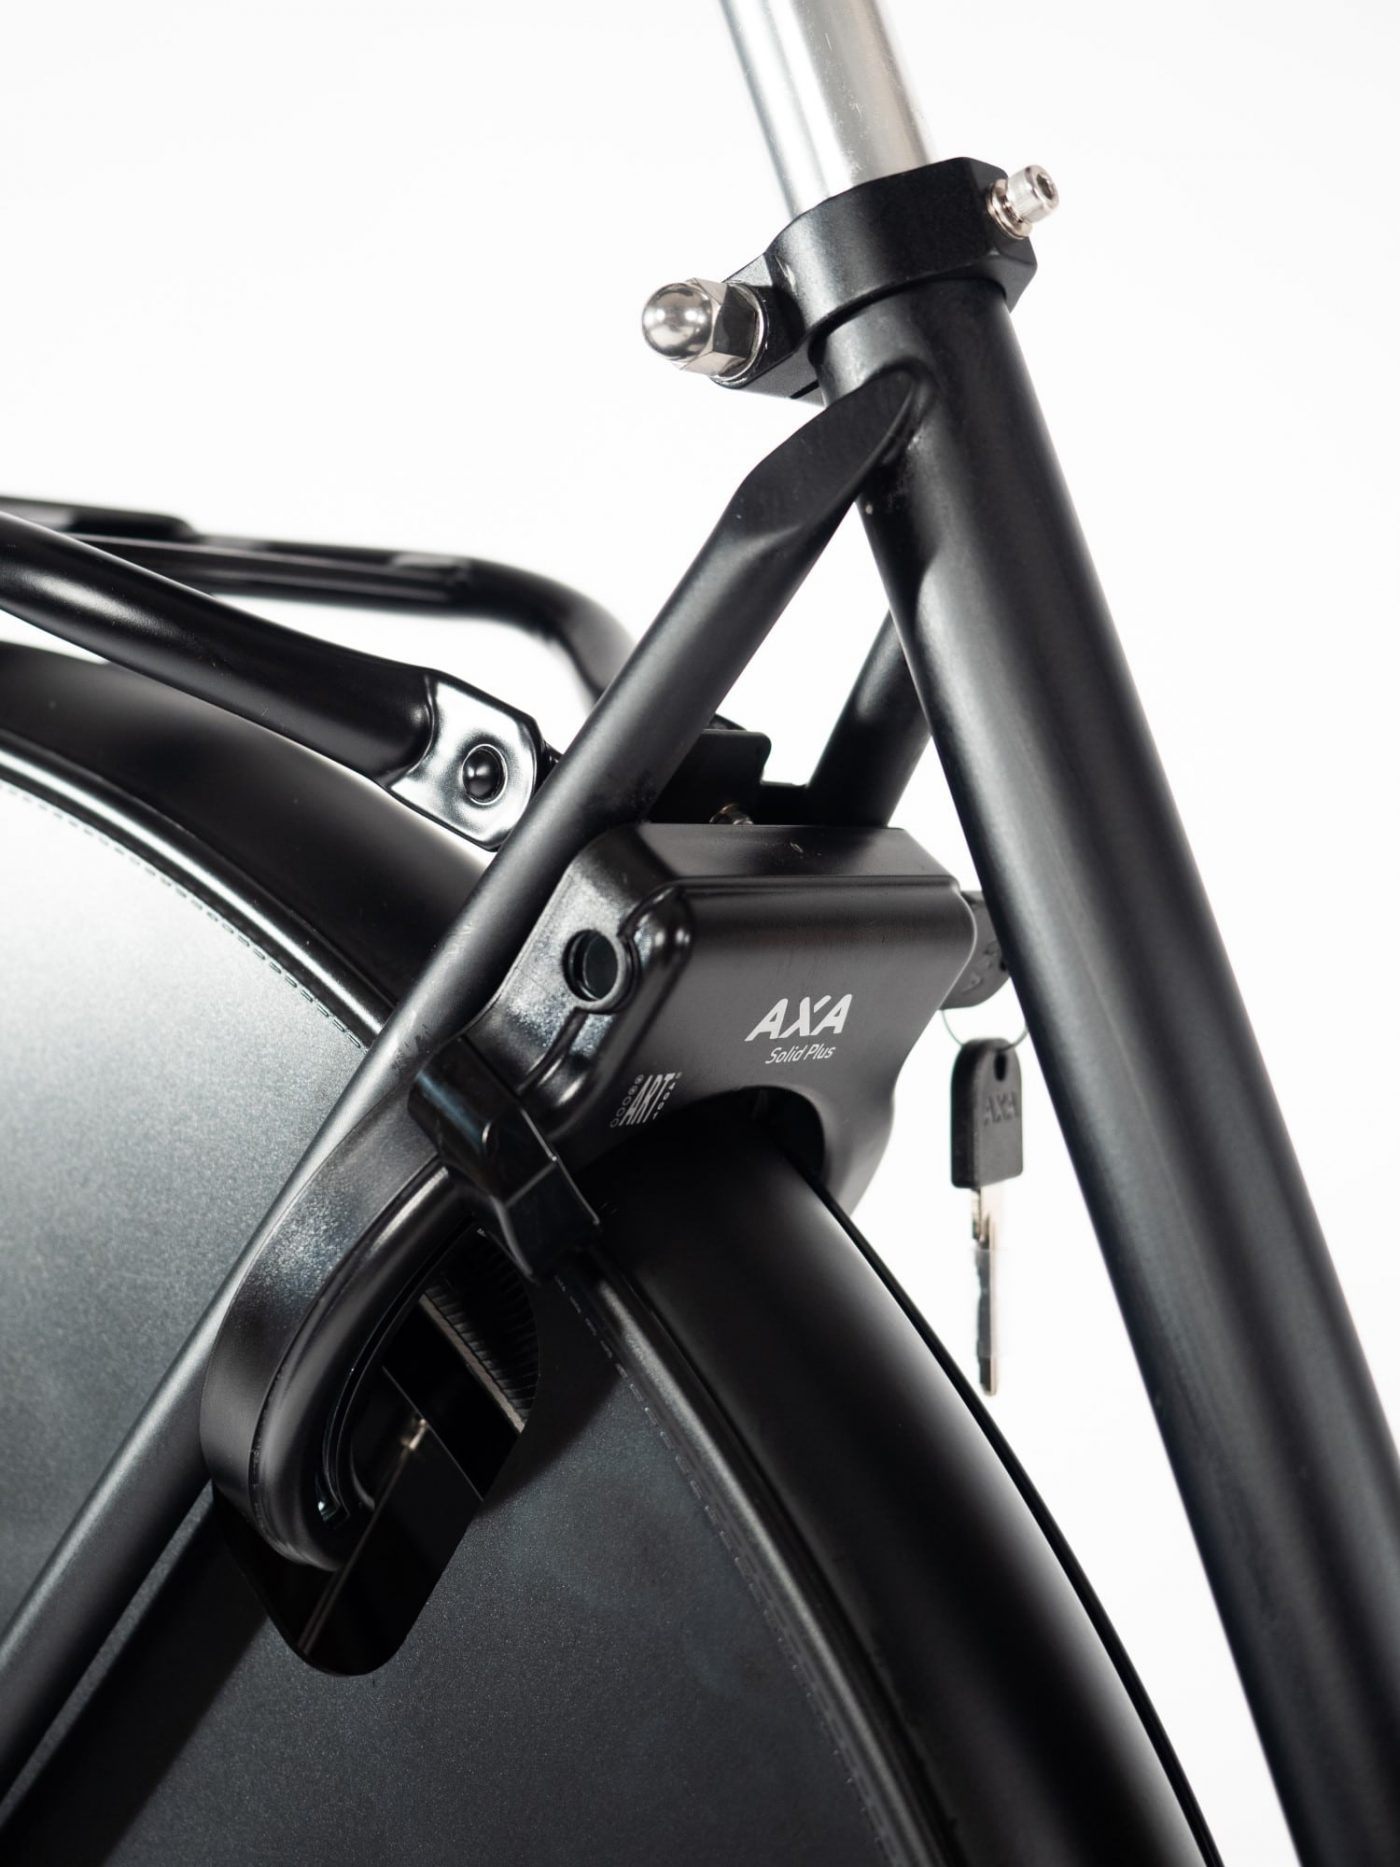 The integrated lock immobilizes the rear wheel. This won't prevent the bike from being carried away but when combined with a chain or U-lock it's a very complete locking system. For those fortunate enough to live in a low-theft area the ring lock is adequate on its own.